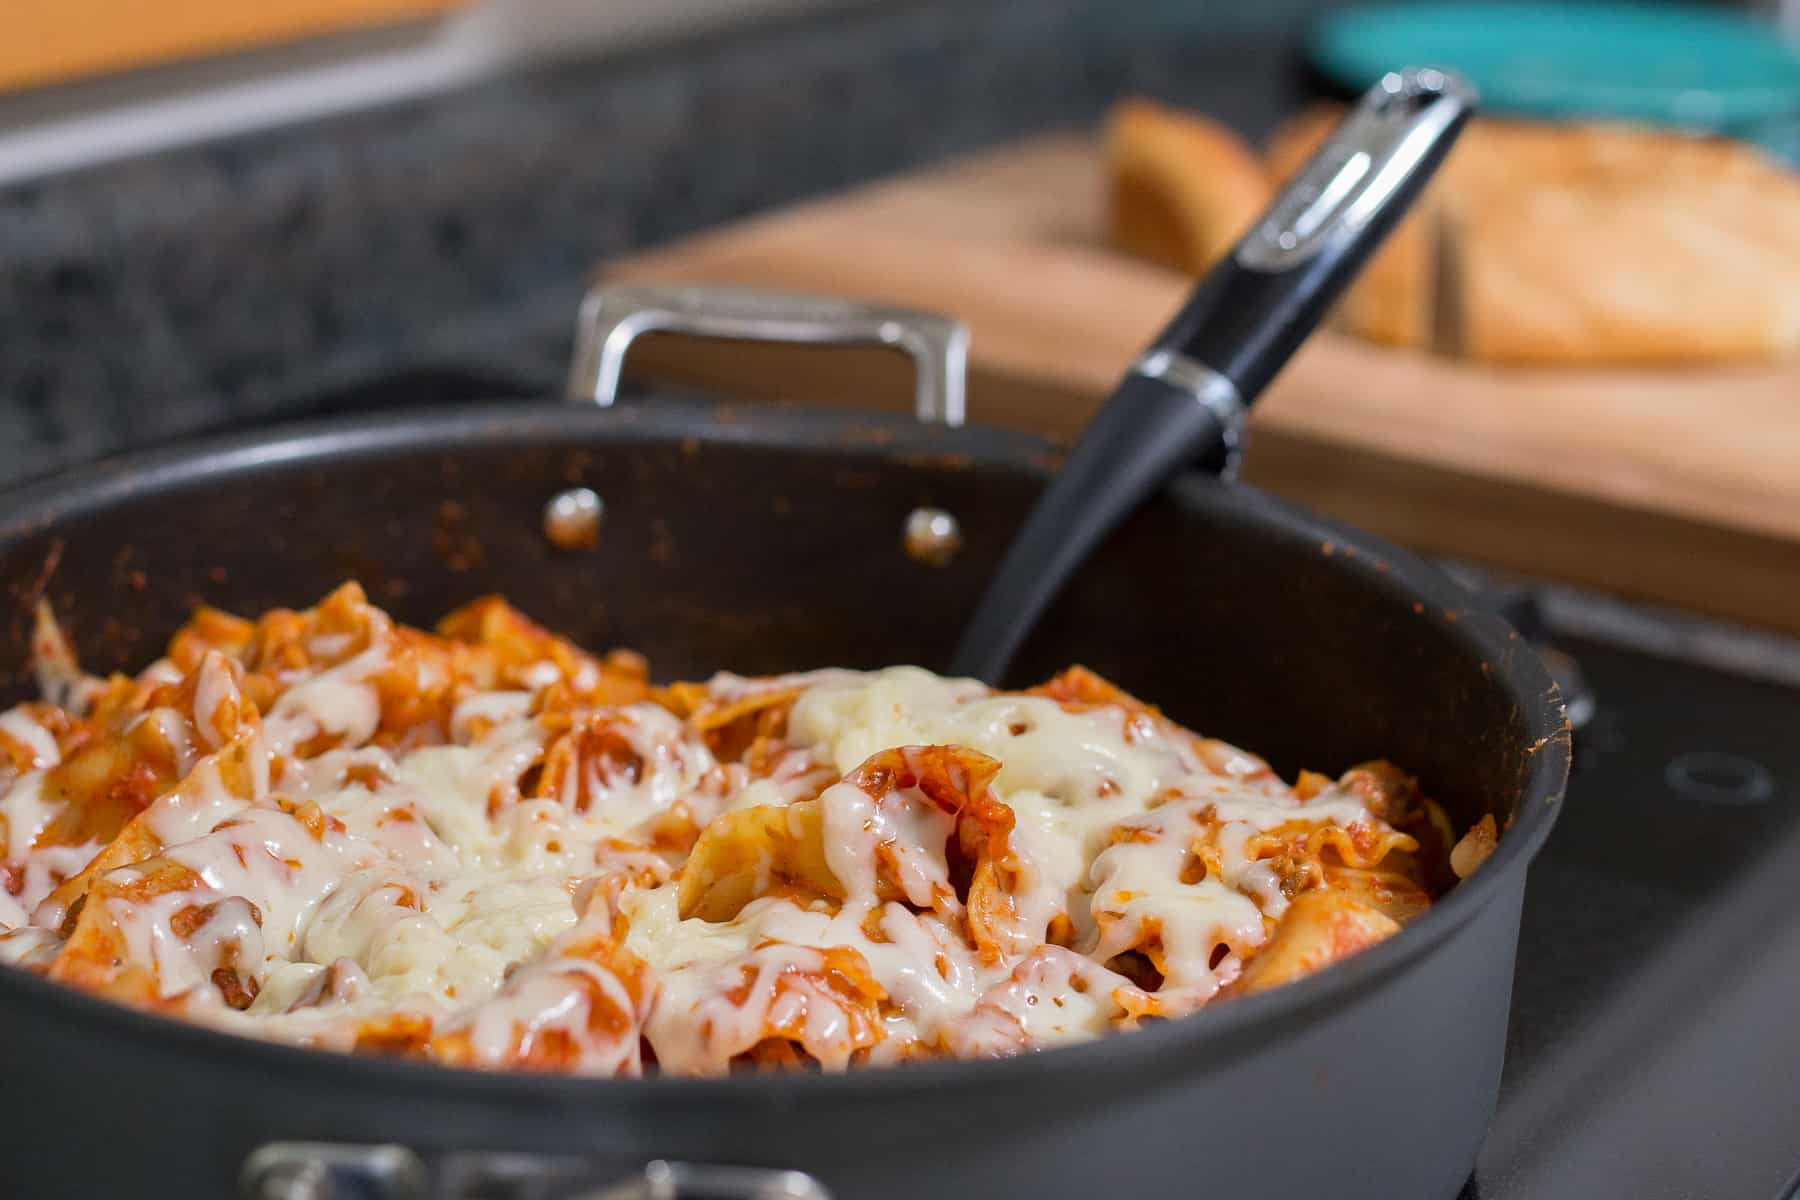 This 20-minute Cheesy Skillet Lasagna Recipe is simple to make on the stovetop. It has only three ingredients and you can make supper in one pot. *My family loves easy Italian food! This is perfect for a fast weeknight dinner.